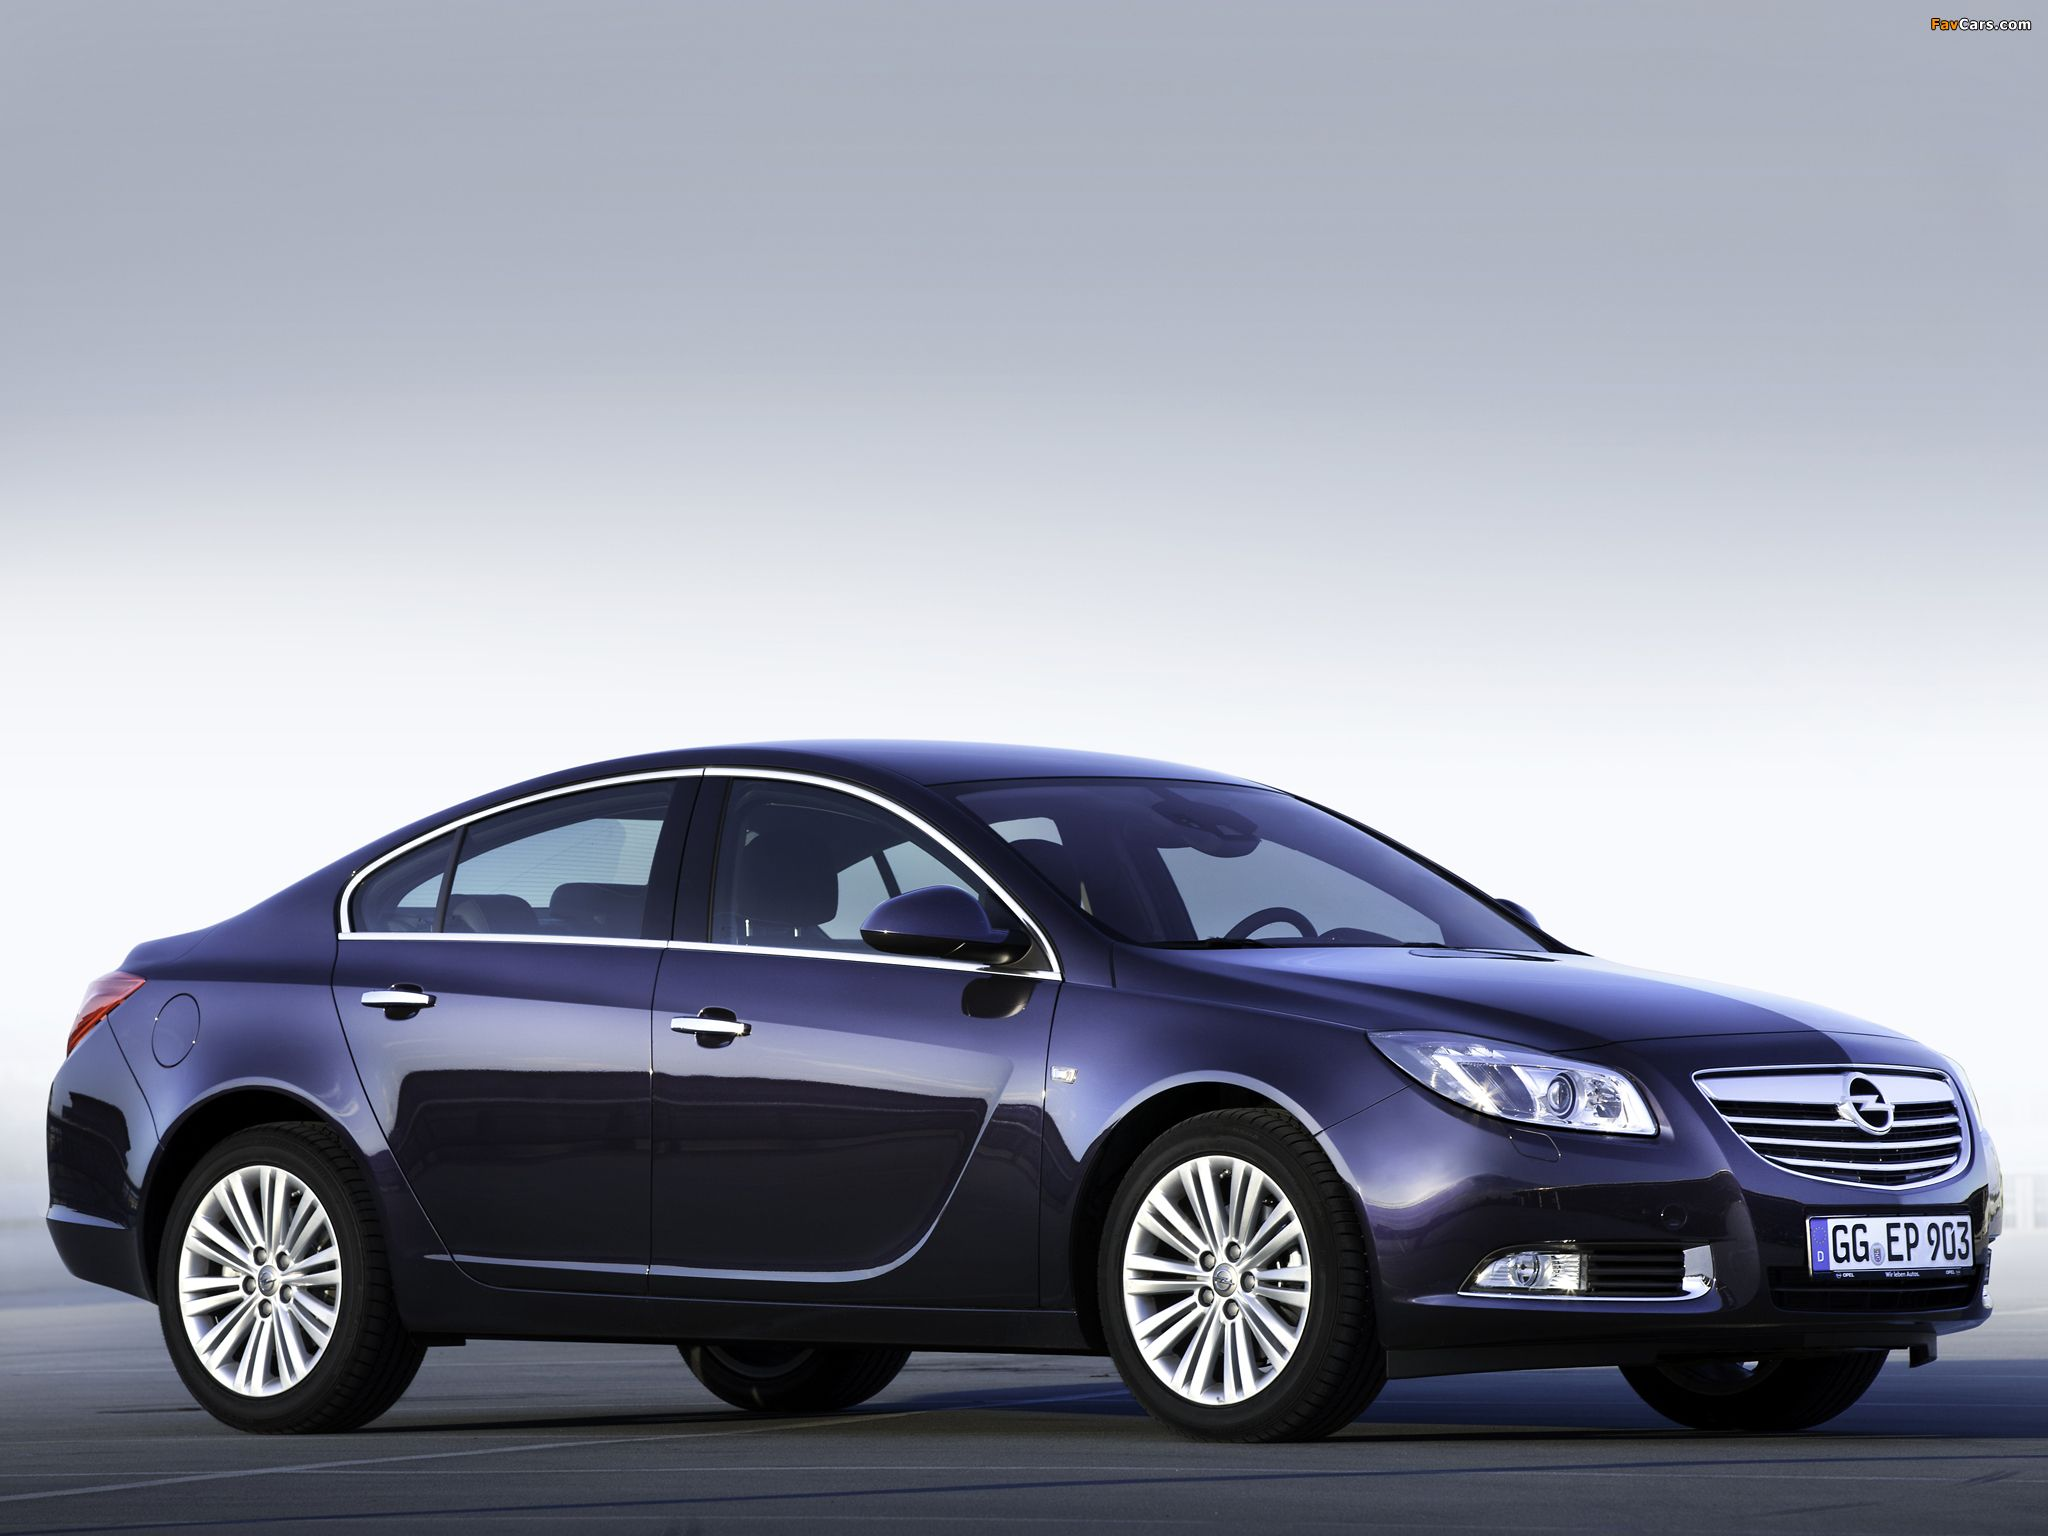 Opel Insignia 2008 pictures Opel, Insignia, Bmw